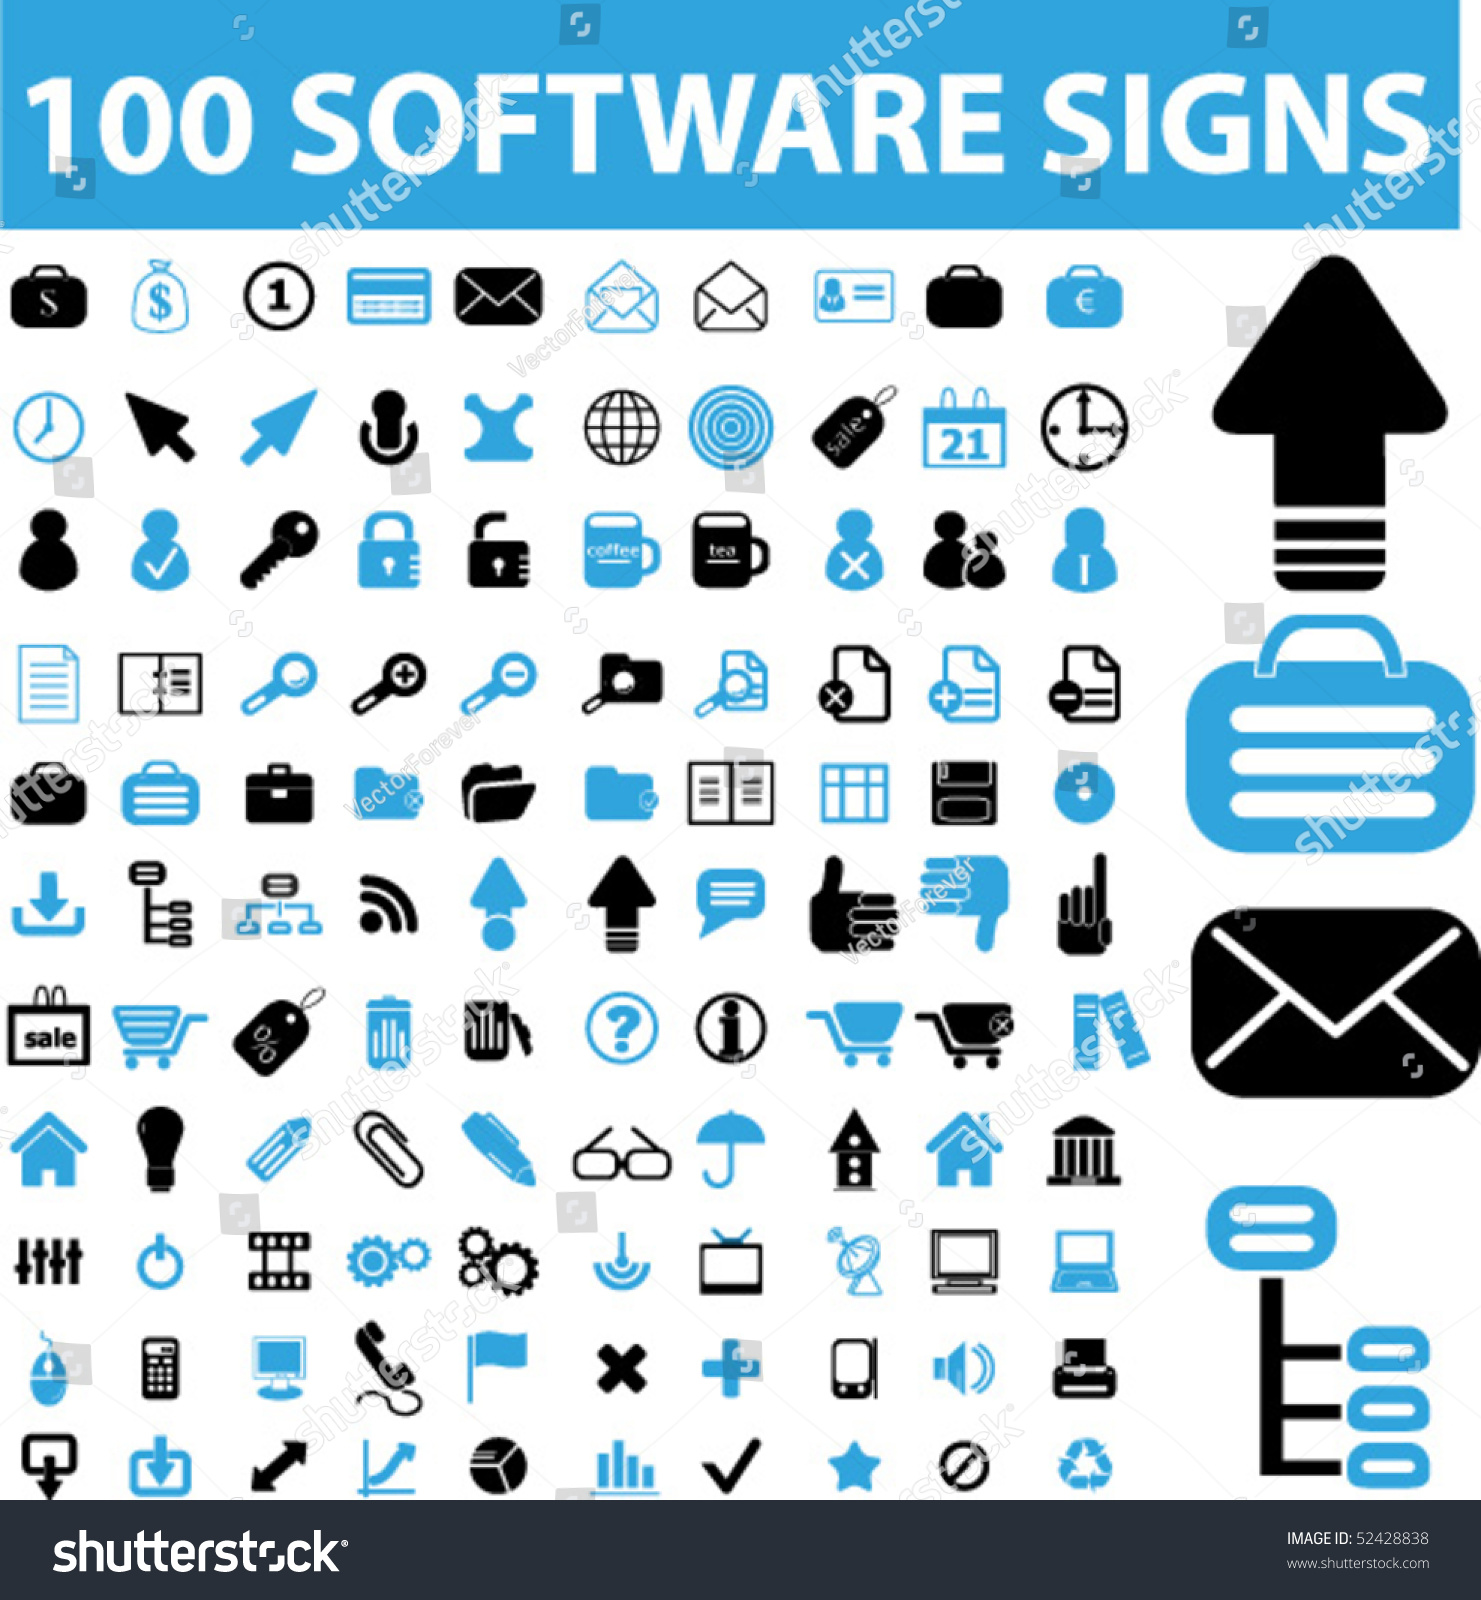 100 software signs vector 52428838 shutterstock Vector image software